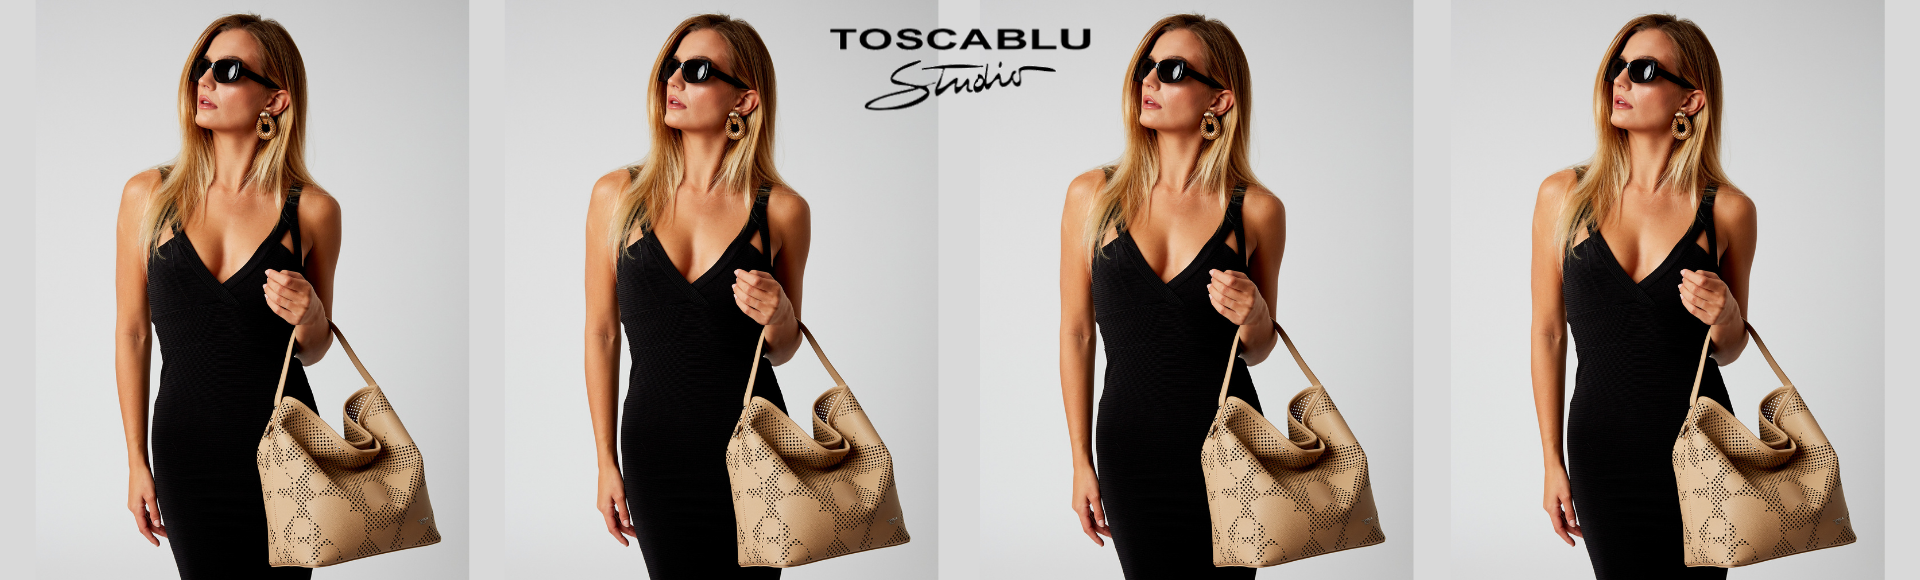 New Collection Tosca Blu